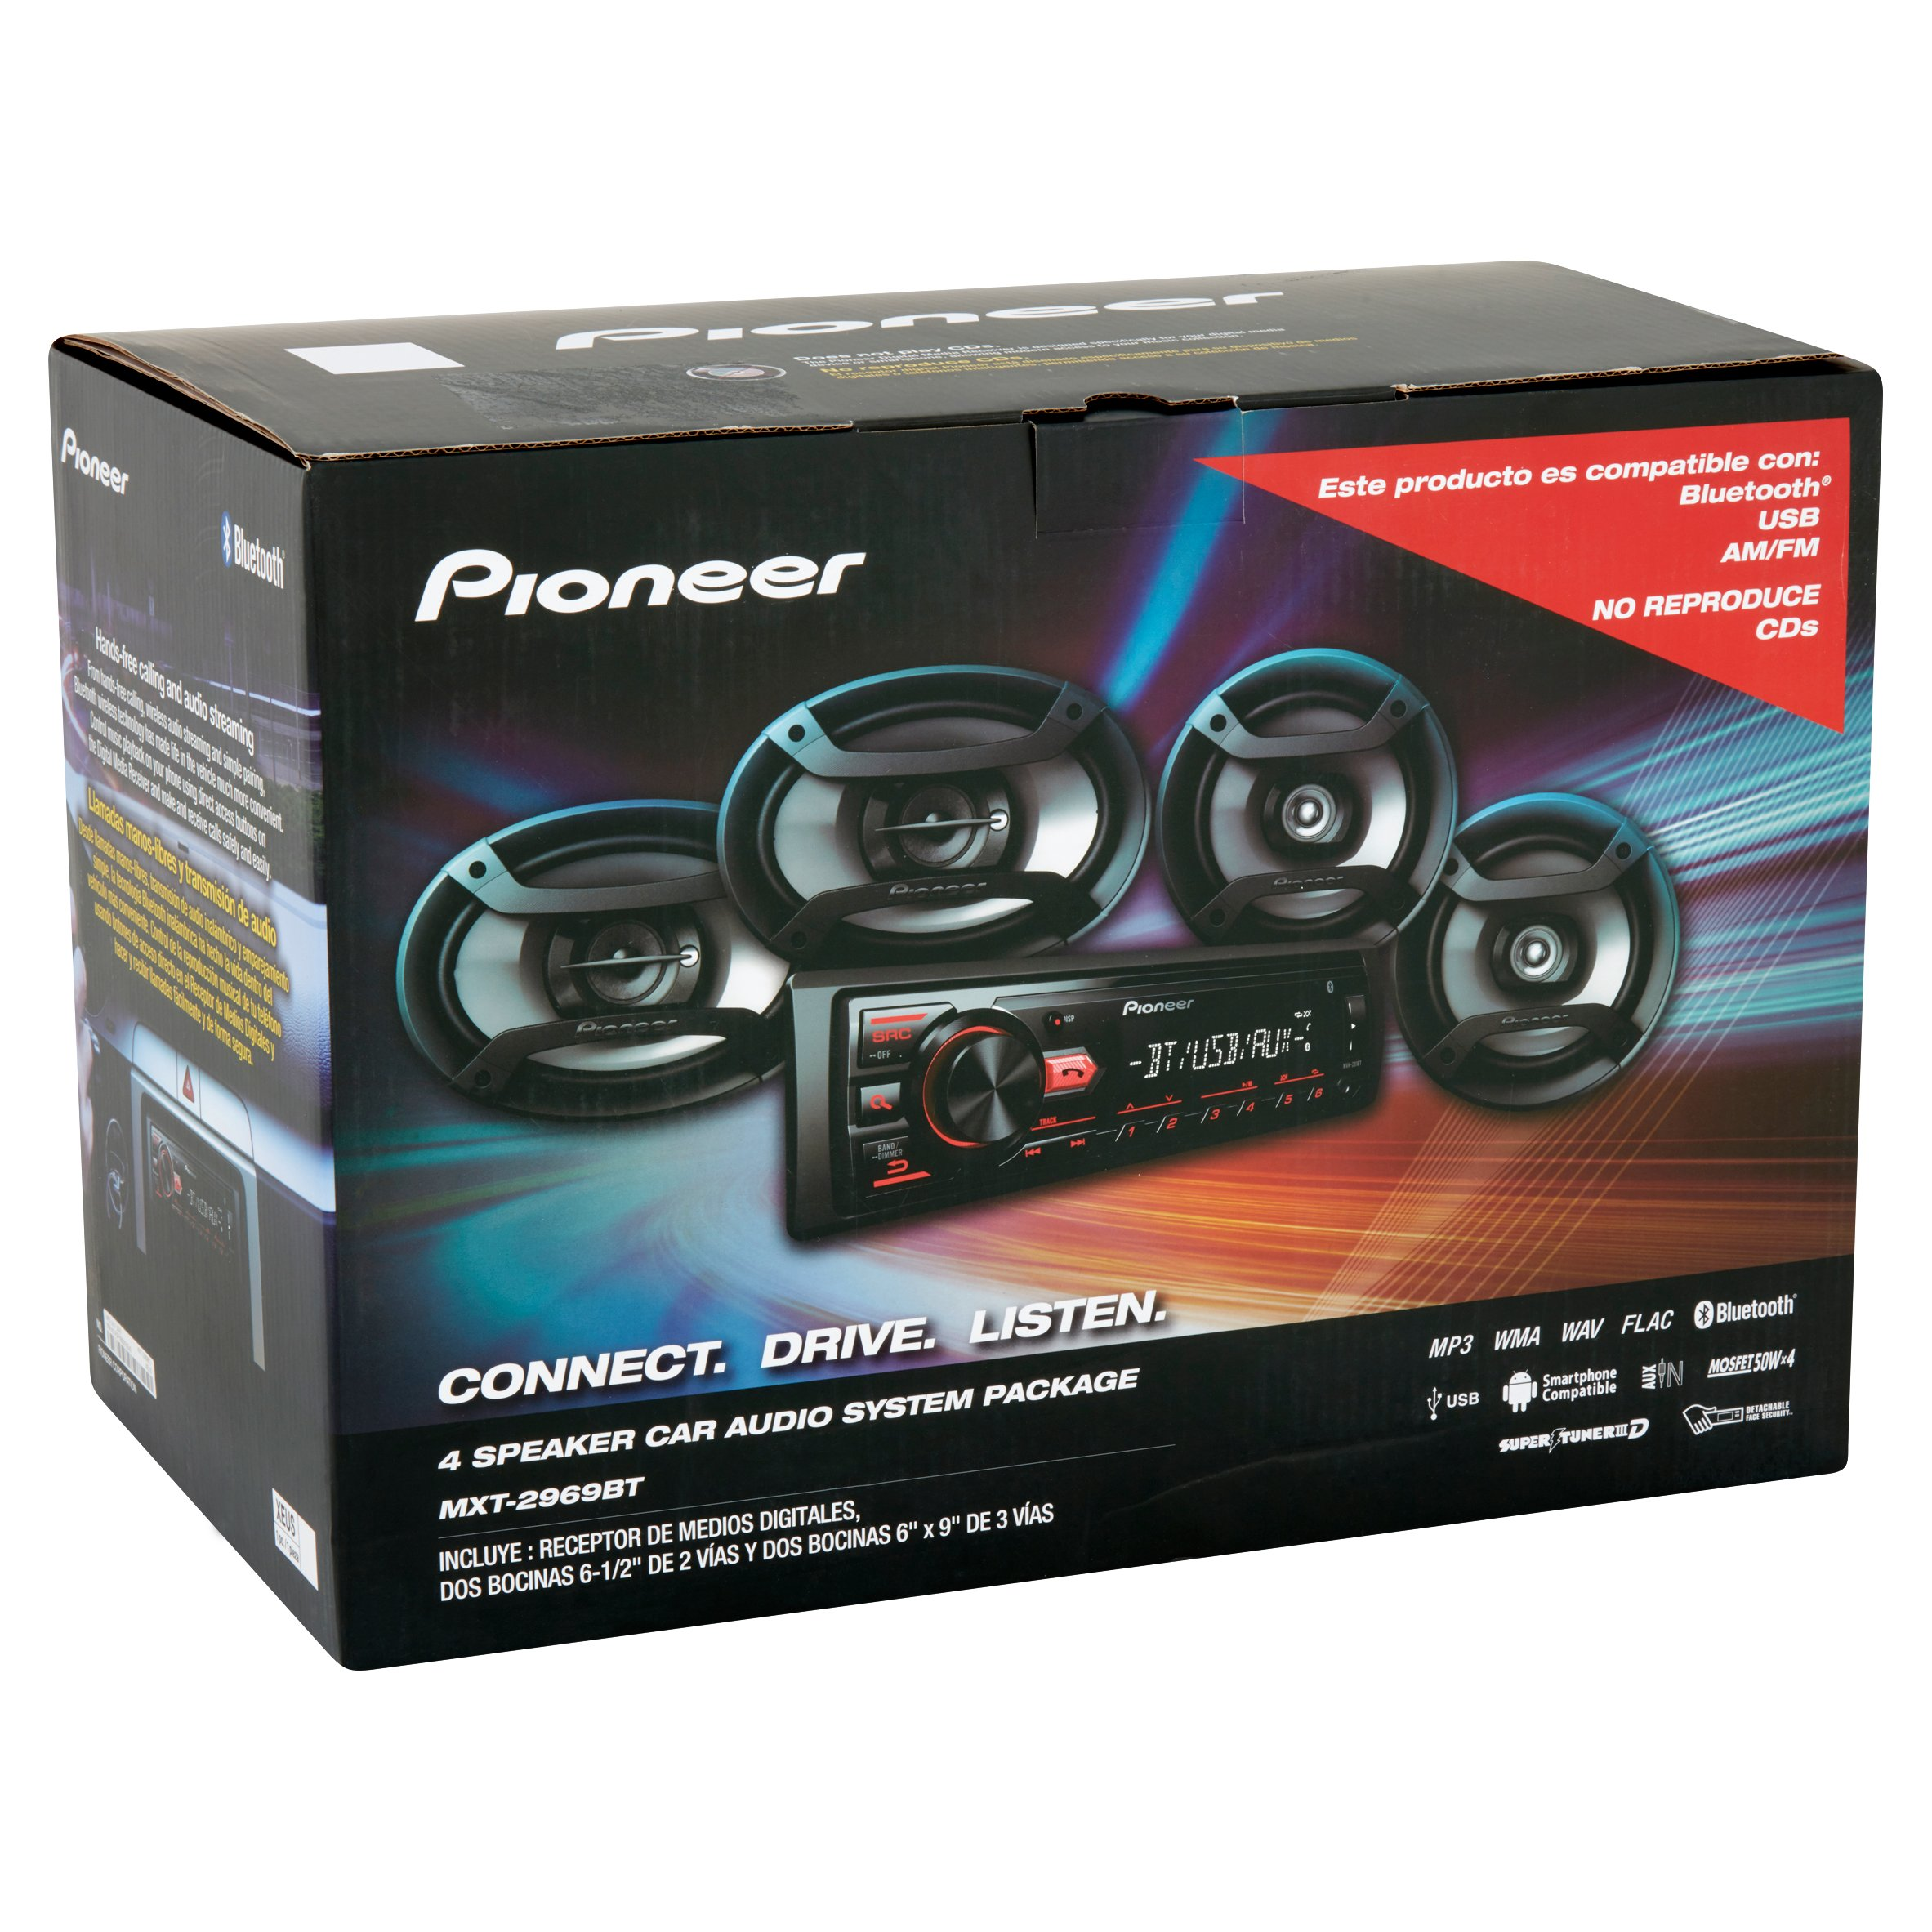 Pioneer 4 Speaker Car Audio System Package - Walmart.com